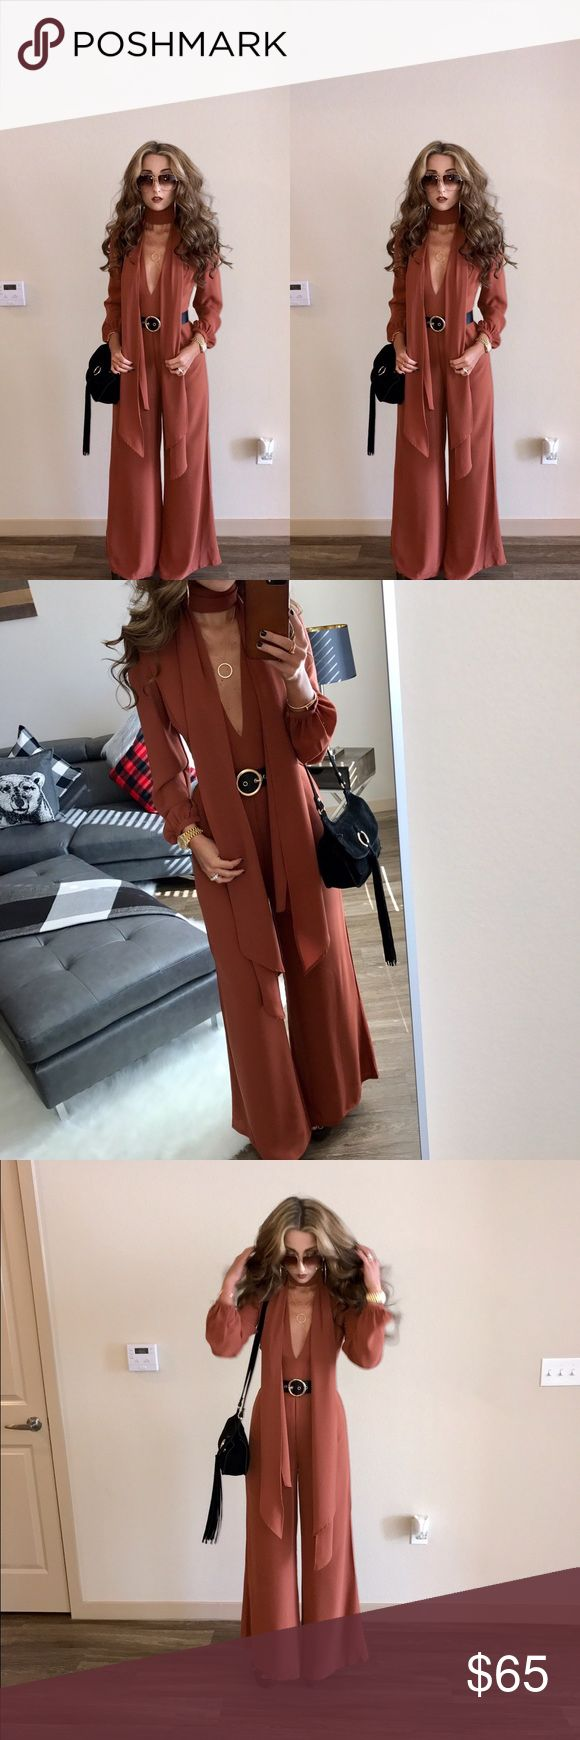 Last call neiman Marcus orange jump suit w/ scarf Last call neiman Marcus orange jumpsuit with matching scarf size small only worn once and dry cleaned like new very cute! Belt not included. last call neiman marcus Other